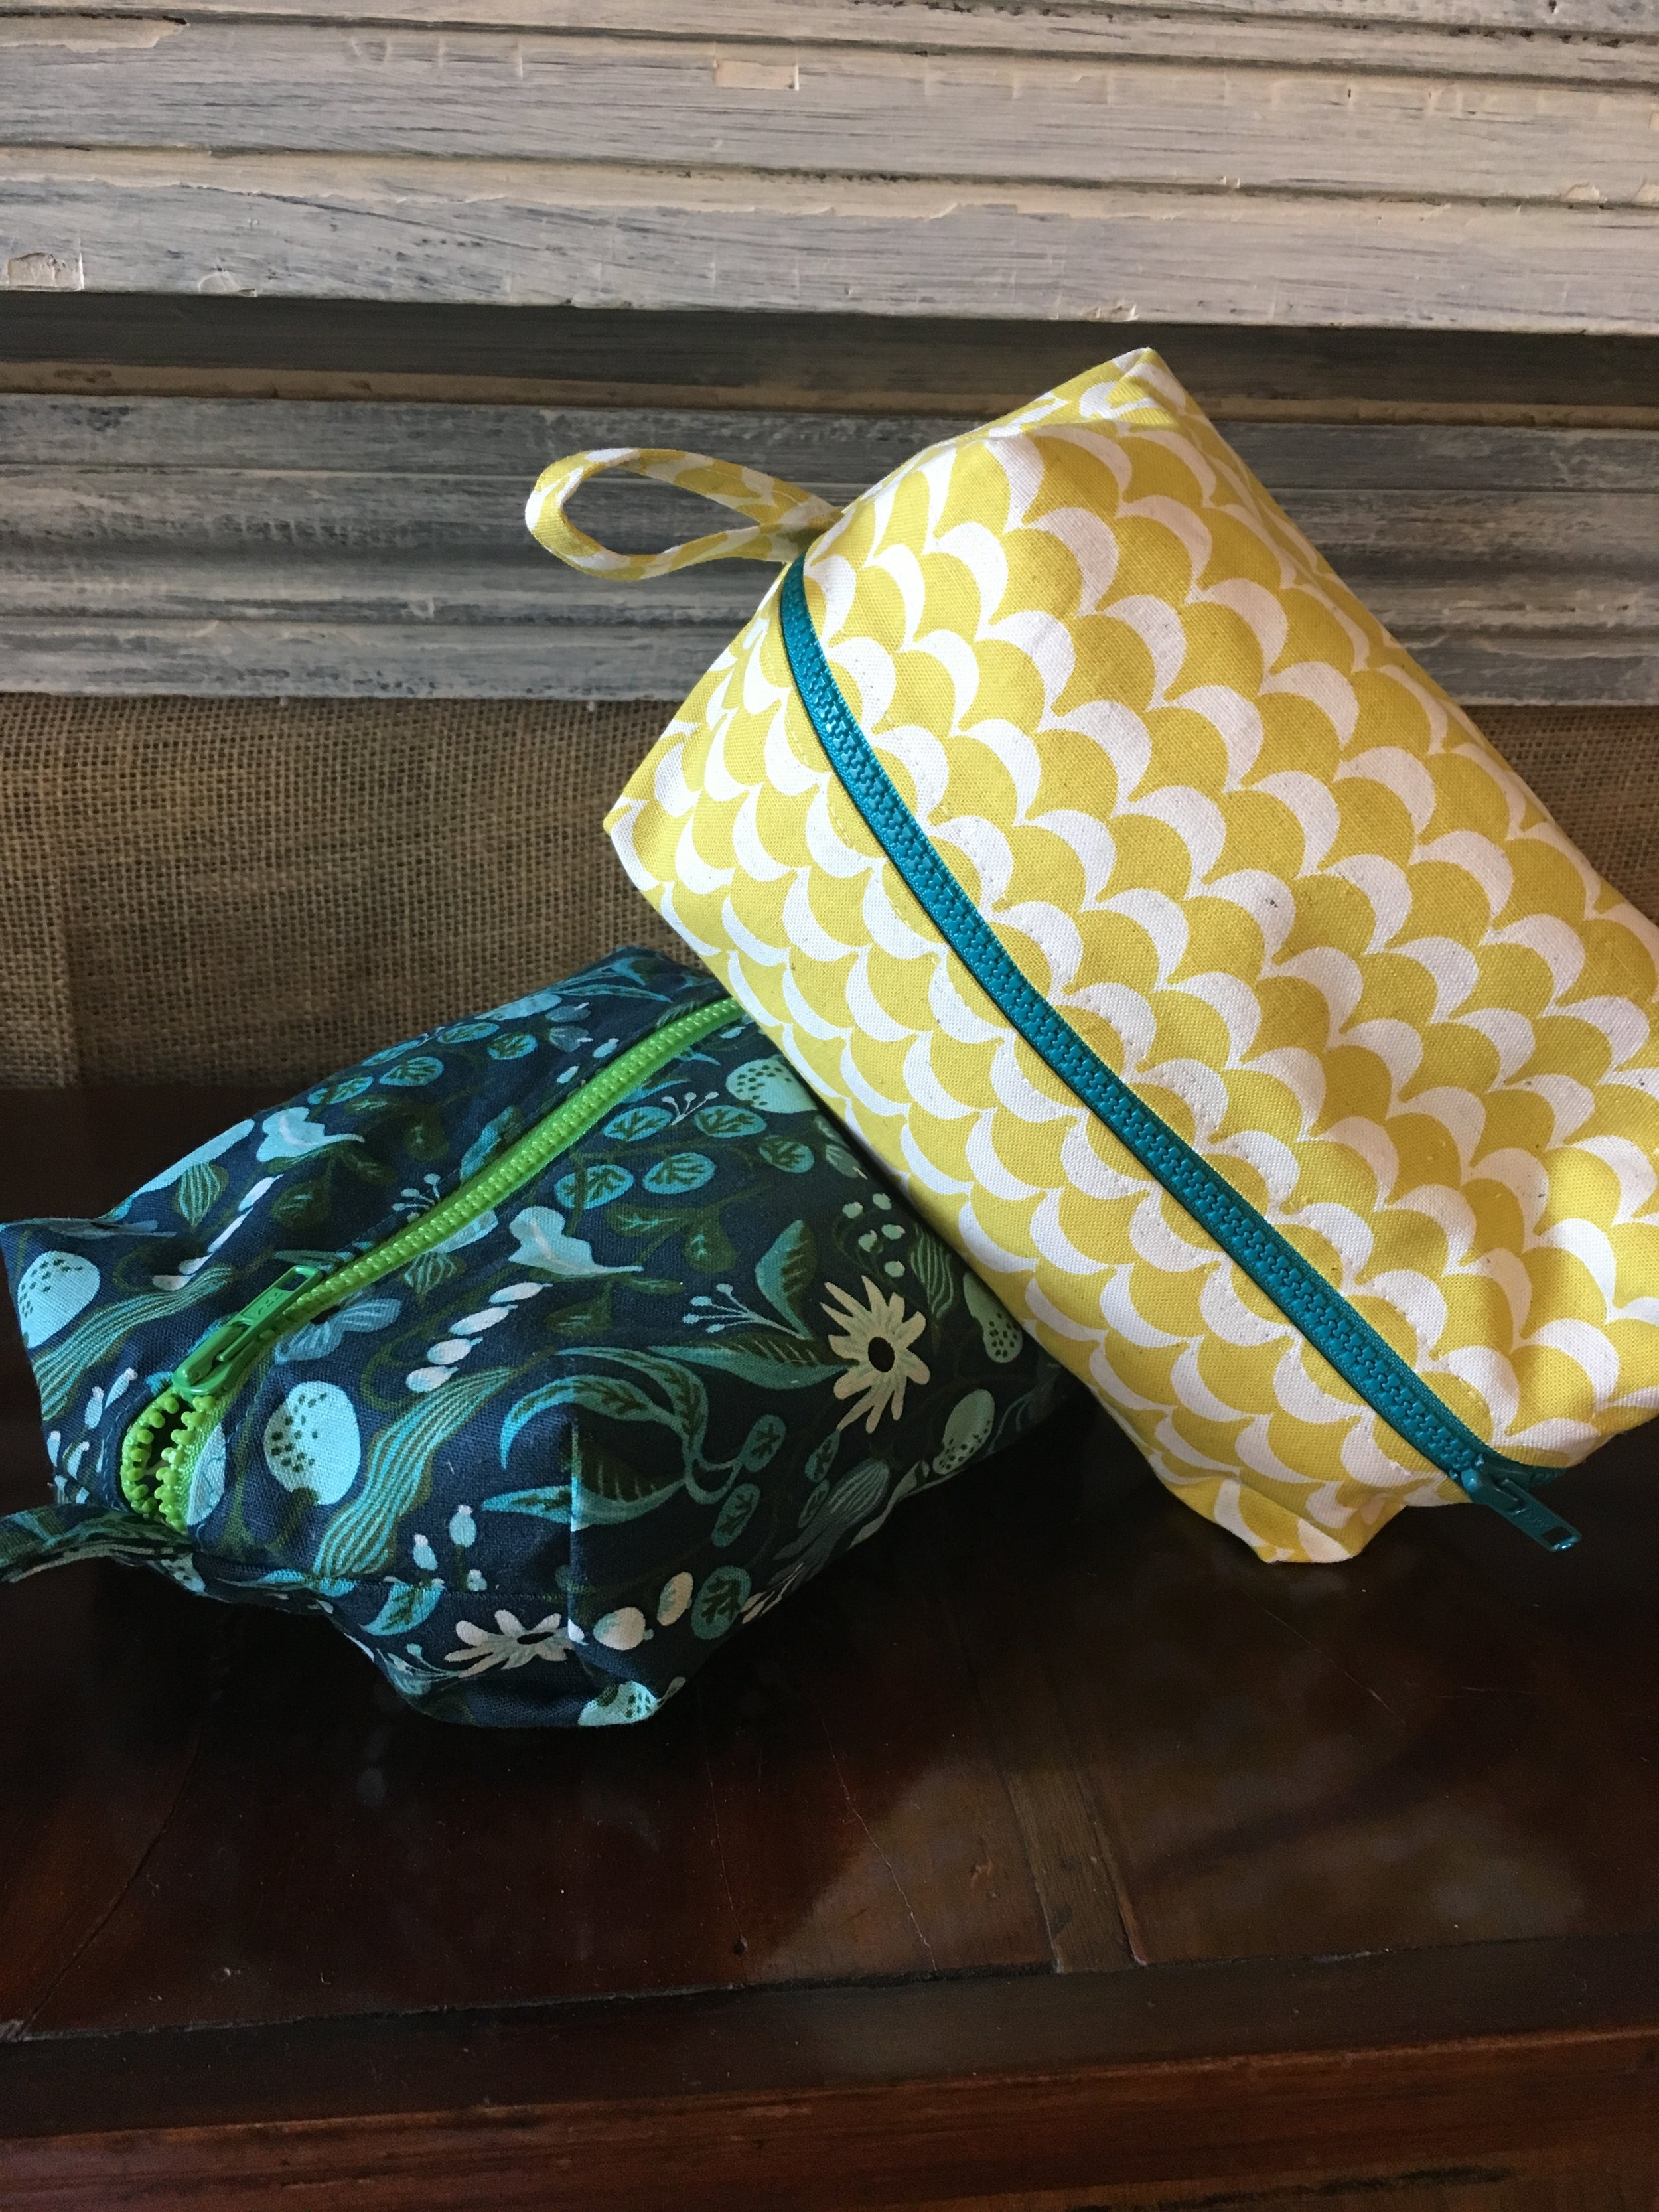 Just the Basics - Zippered Dopp Kit - Advanced Beginner Sewing Class -This is a 3 hour class where we will construct a fully lined zippered tote. Perfect for travel, sewing supplies and even your lunch. You will learn a simple way to put in a zipper, create gussets and how to put in a lining.Basic machine skills required.Please bring your machine in good working order (or you can rent one from us), sewing tools and fabric of your choice.You will need two complimentary fabrics. Zippers will be supplied. If you choose to purchase fabric at EBM you will get student discount of 20%.Skill Level: advance beginner/intermediateWhen: Wed. August 21 from 6-9 pmCost: $45.00 for the class, Machine rental an additional $10